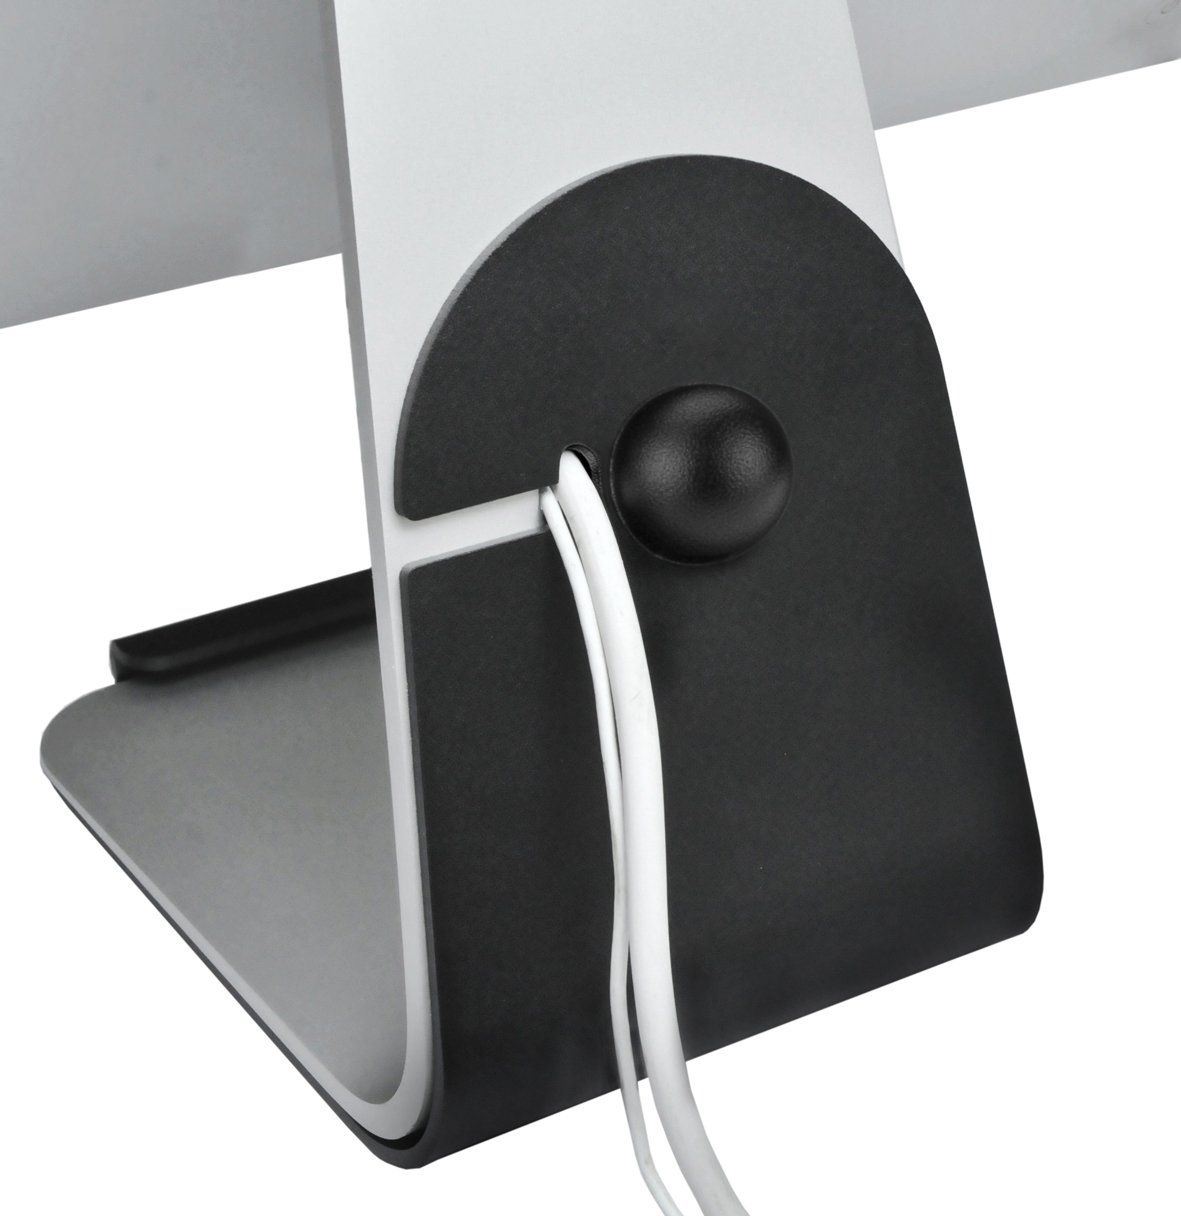 SecurityXtra Rackmini Anti-Theft Security Lock Enclosure for Mac Mini and Server by SecurityXtra (Image #2)